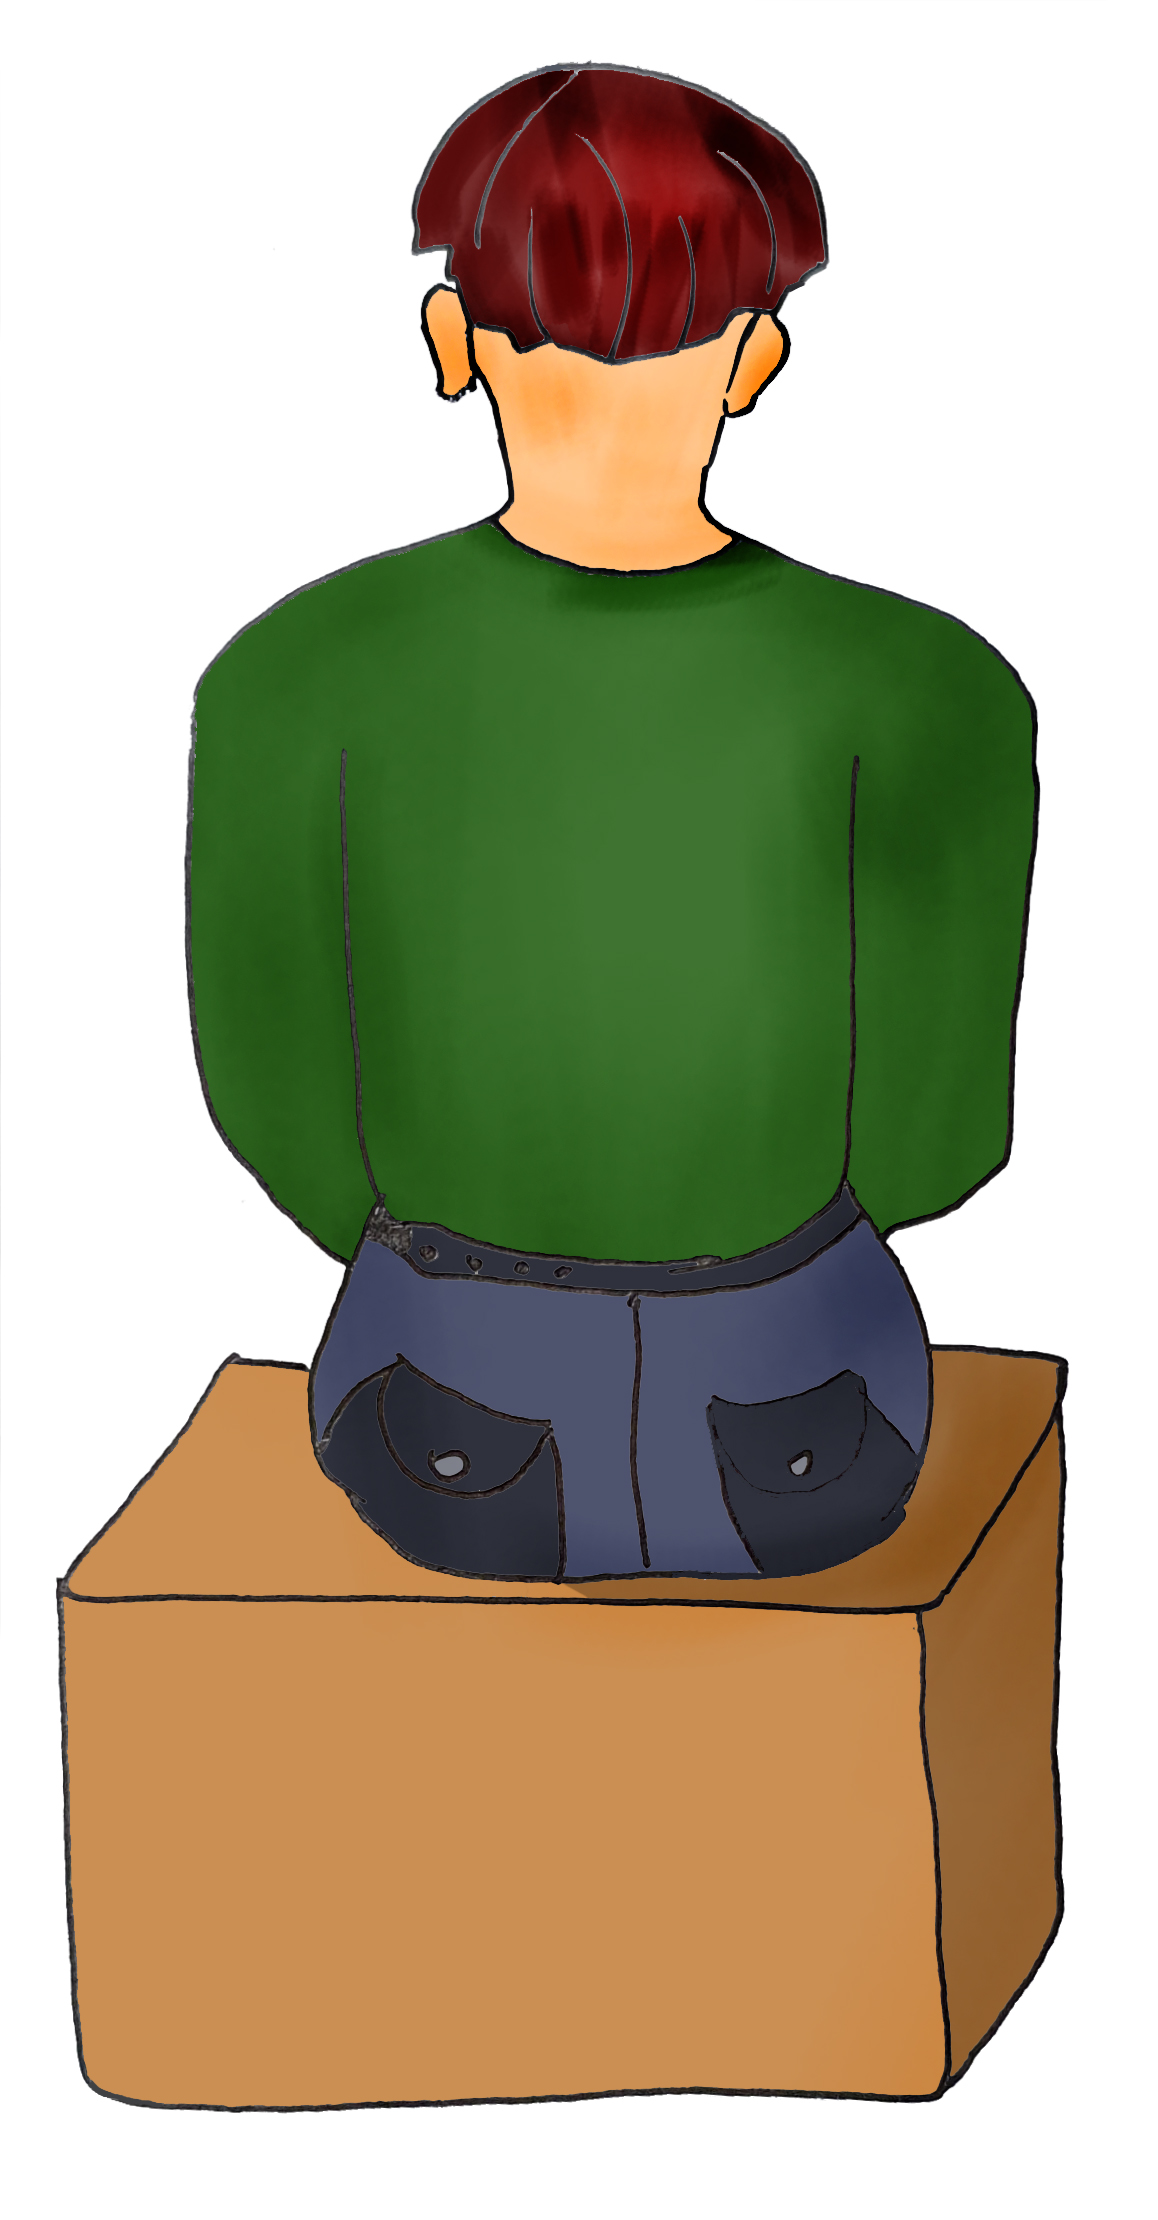 Man sitting on a box